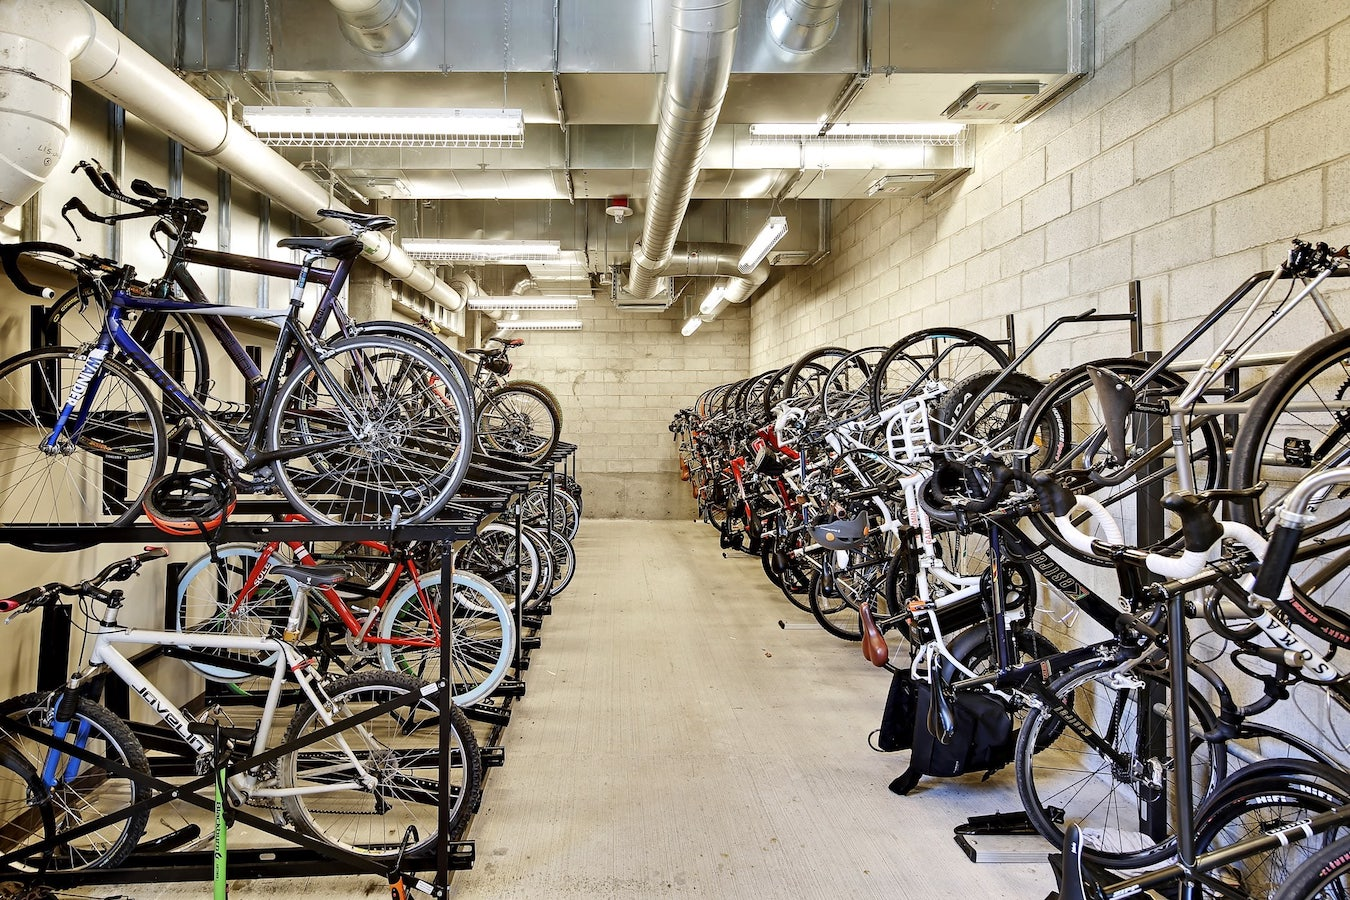 Amenities - Bike Storage